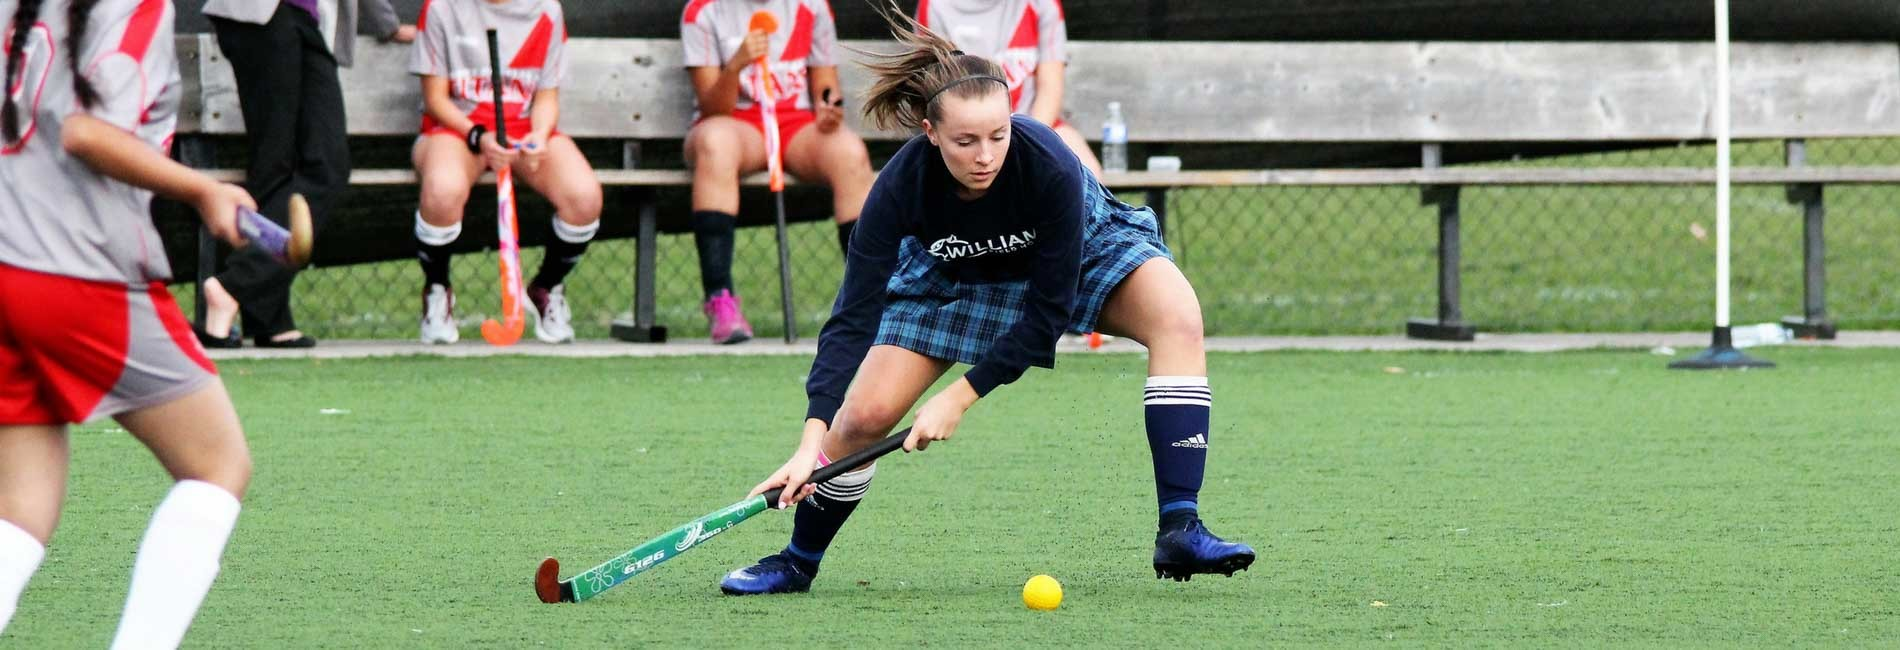 Standard swscd   field hockey  1   activity page banner  1900x650